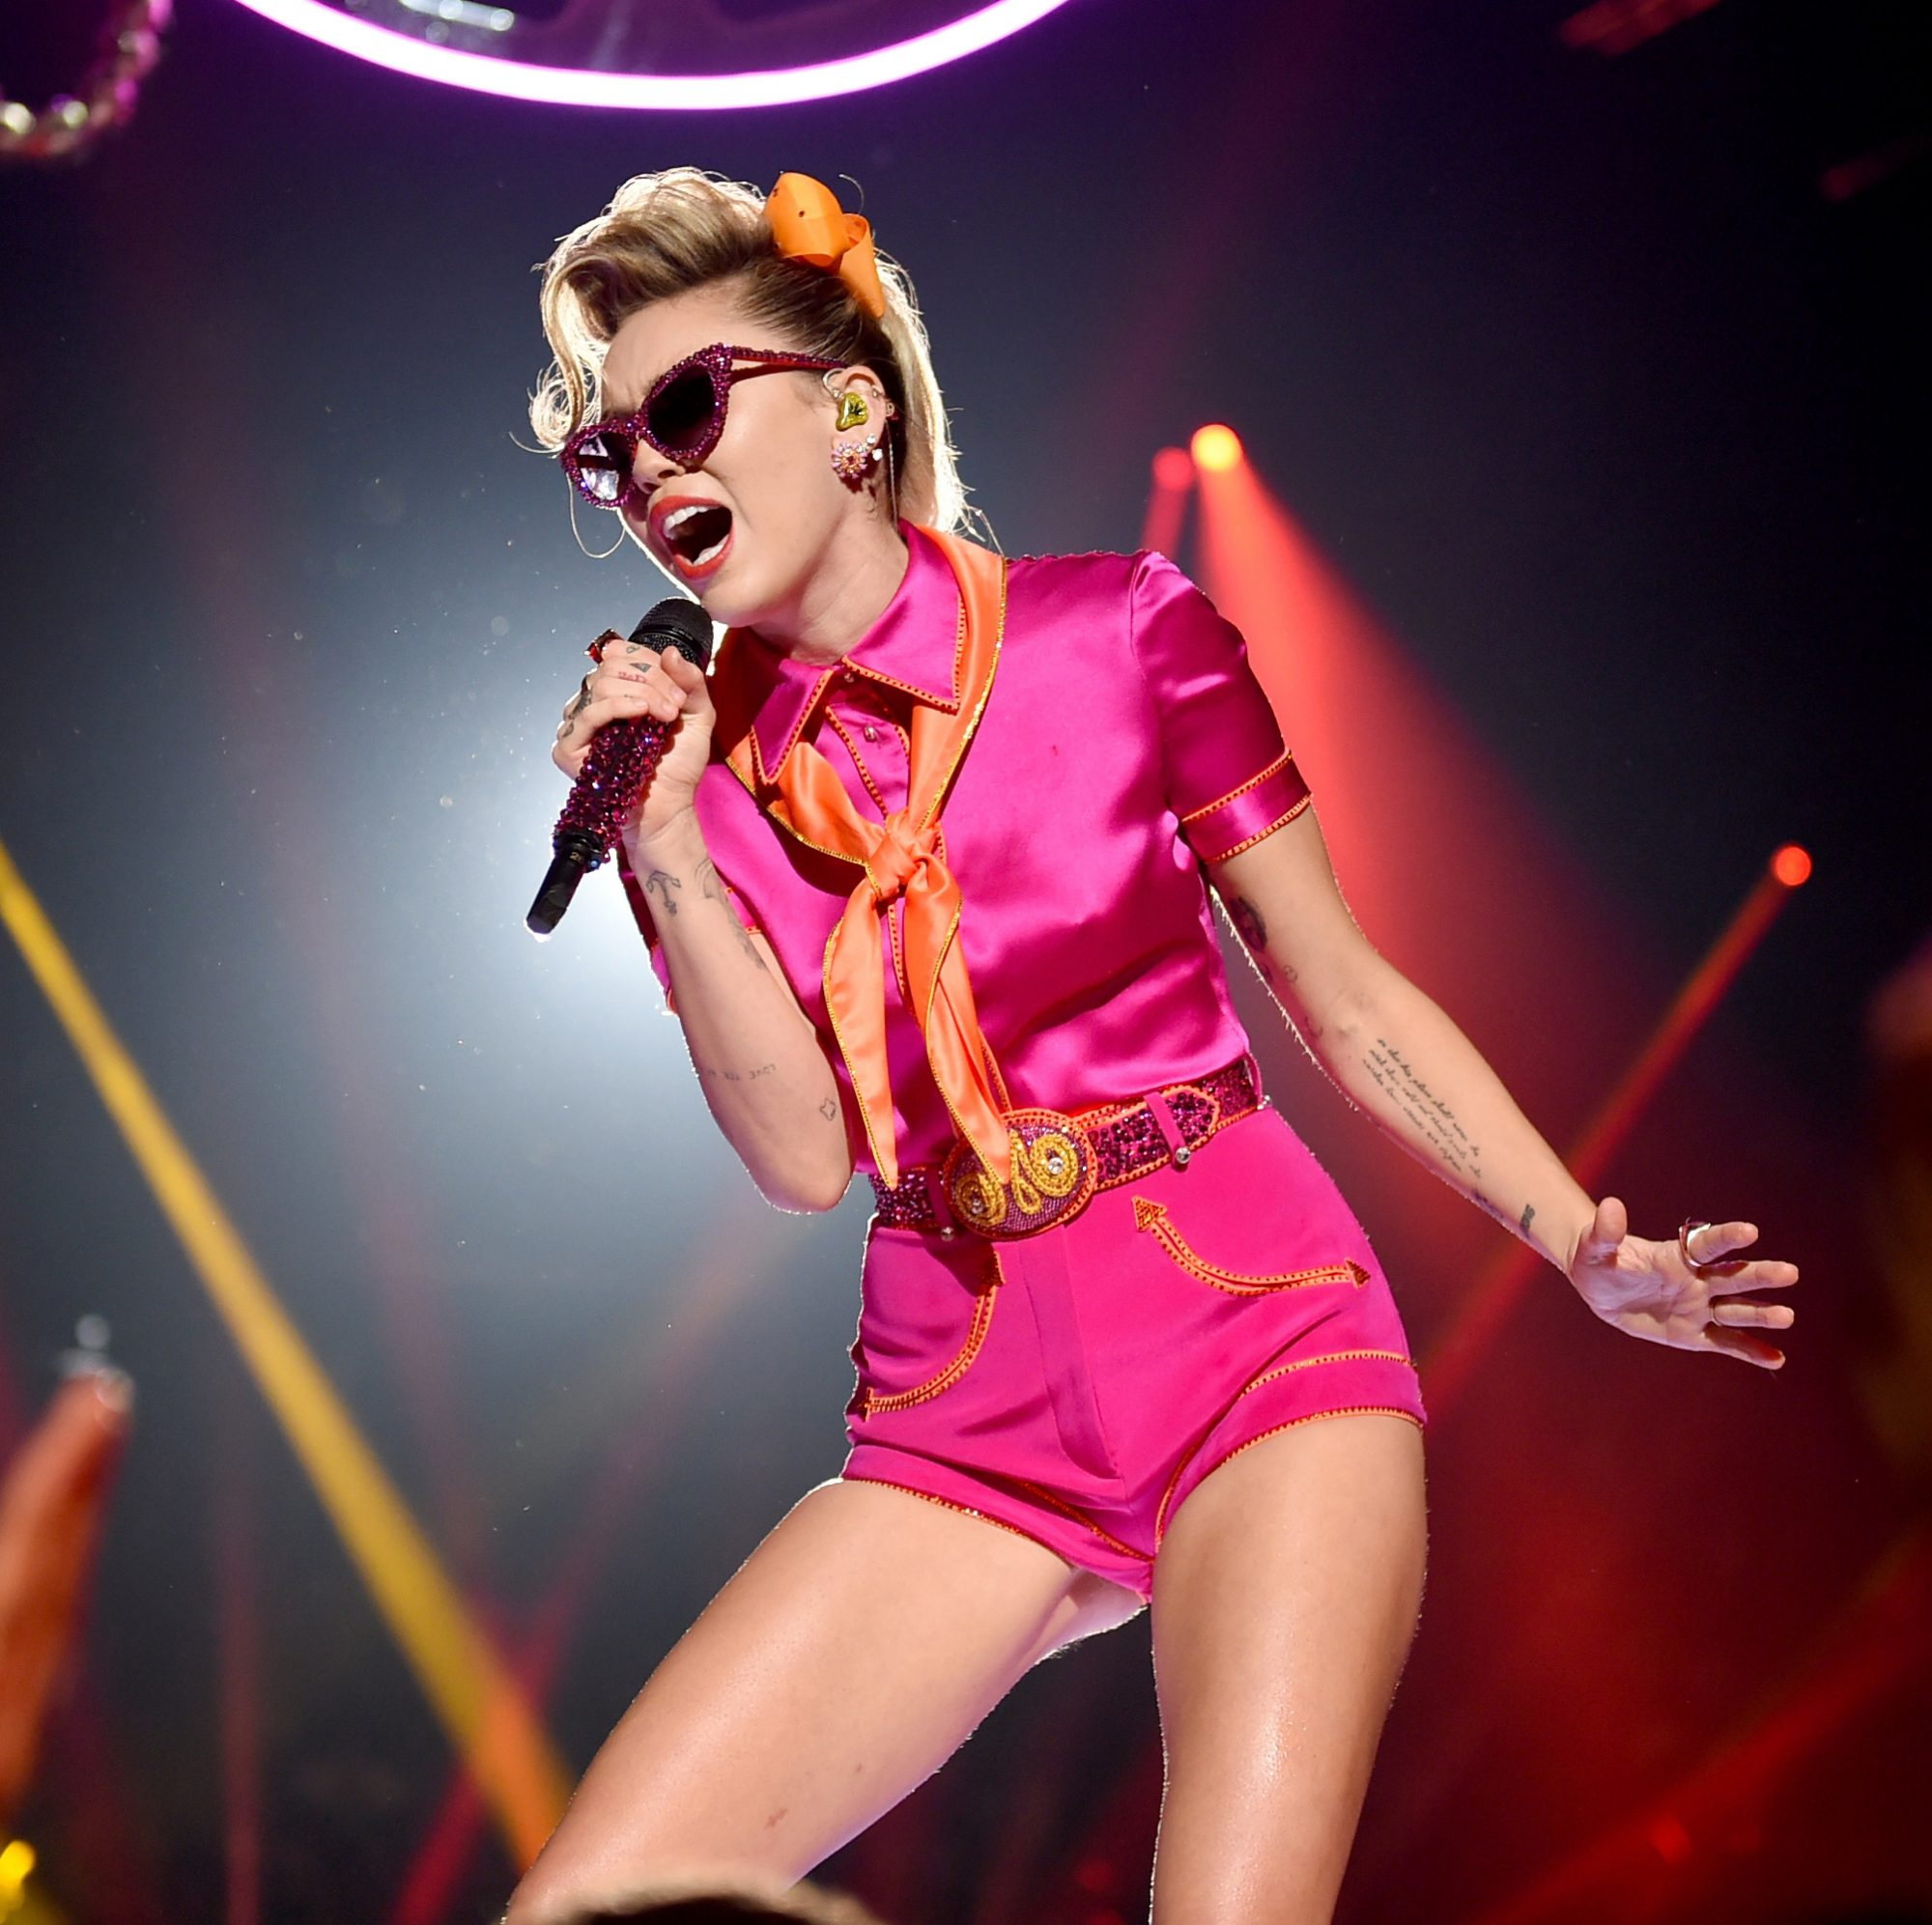 Miley Cyrus - Younger Now VMA